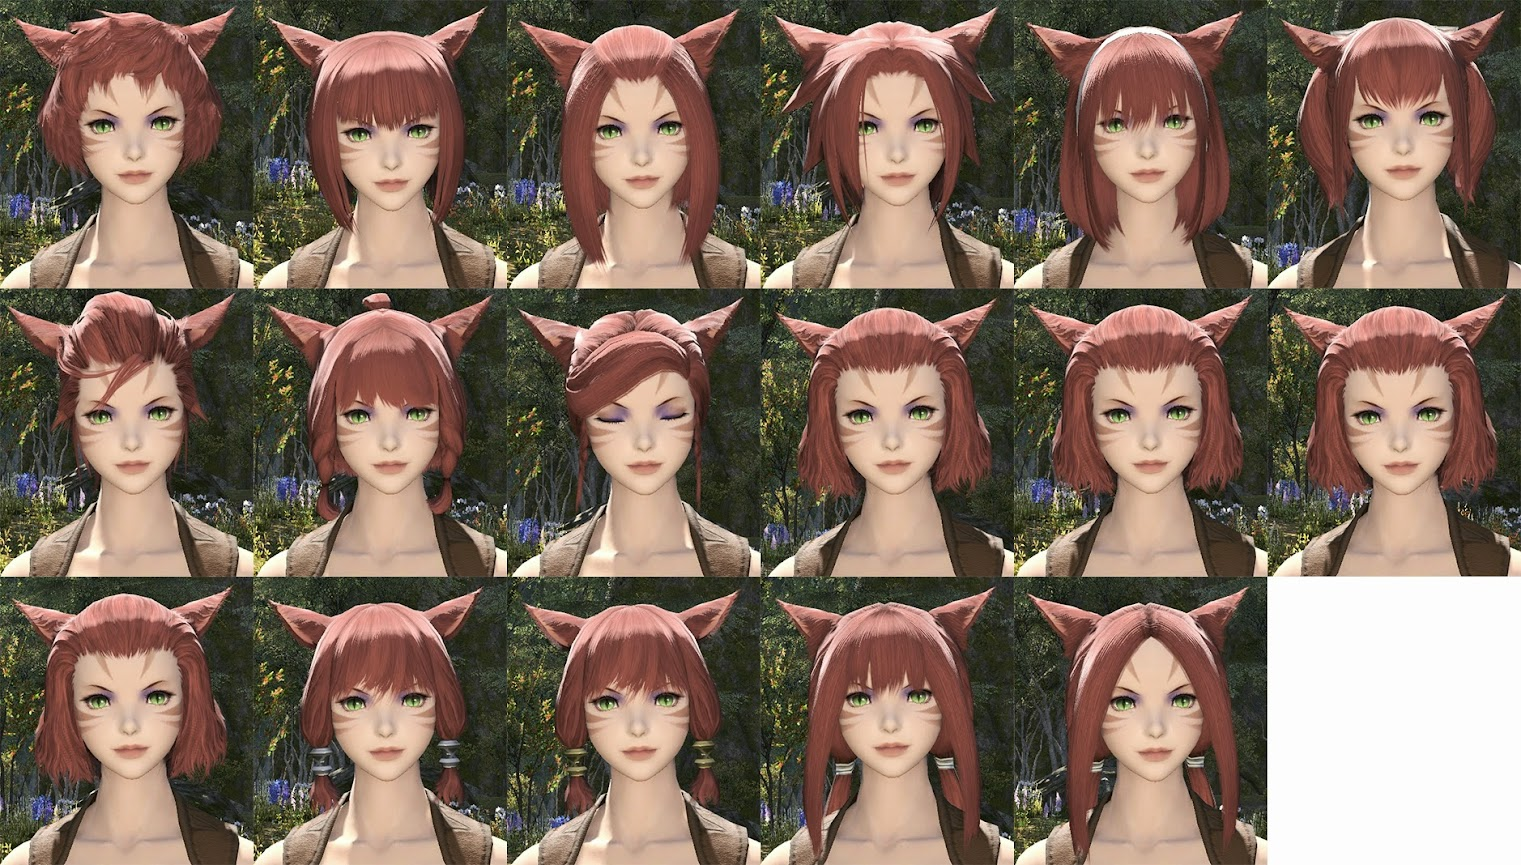 ffxiv character creation – ald shot first